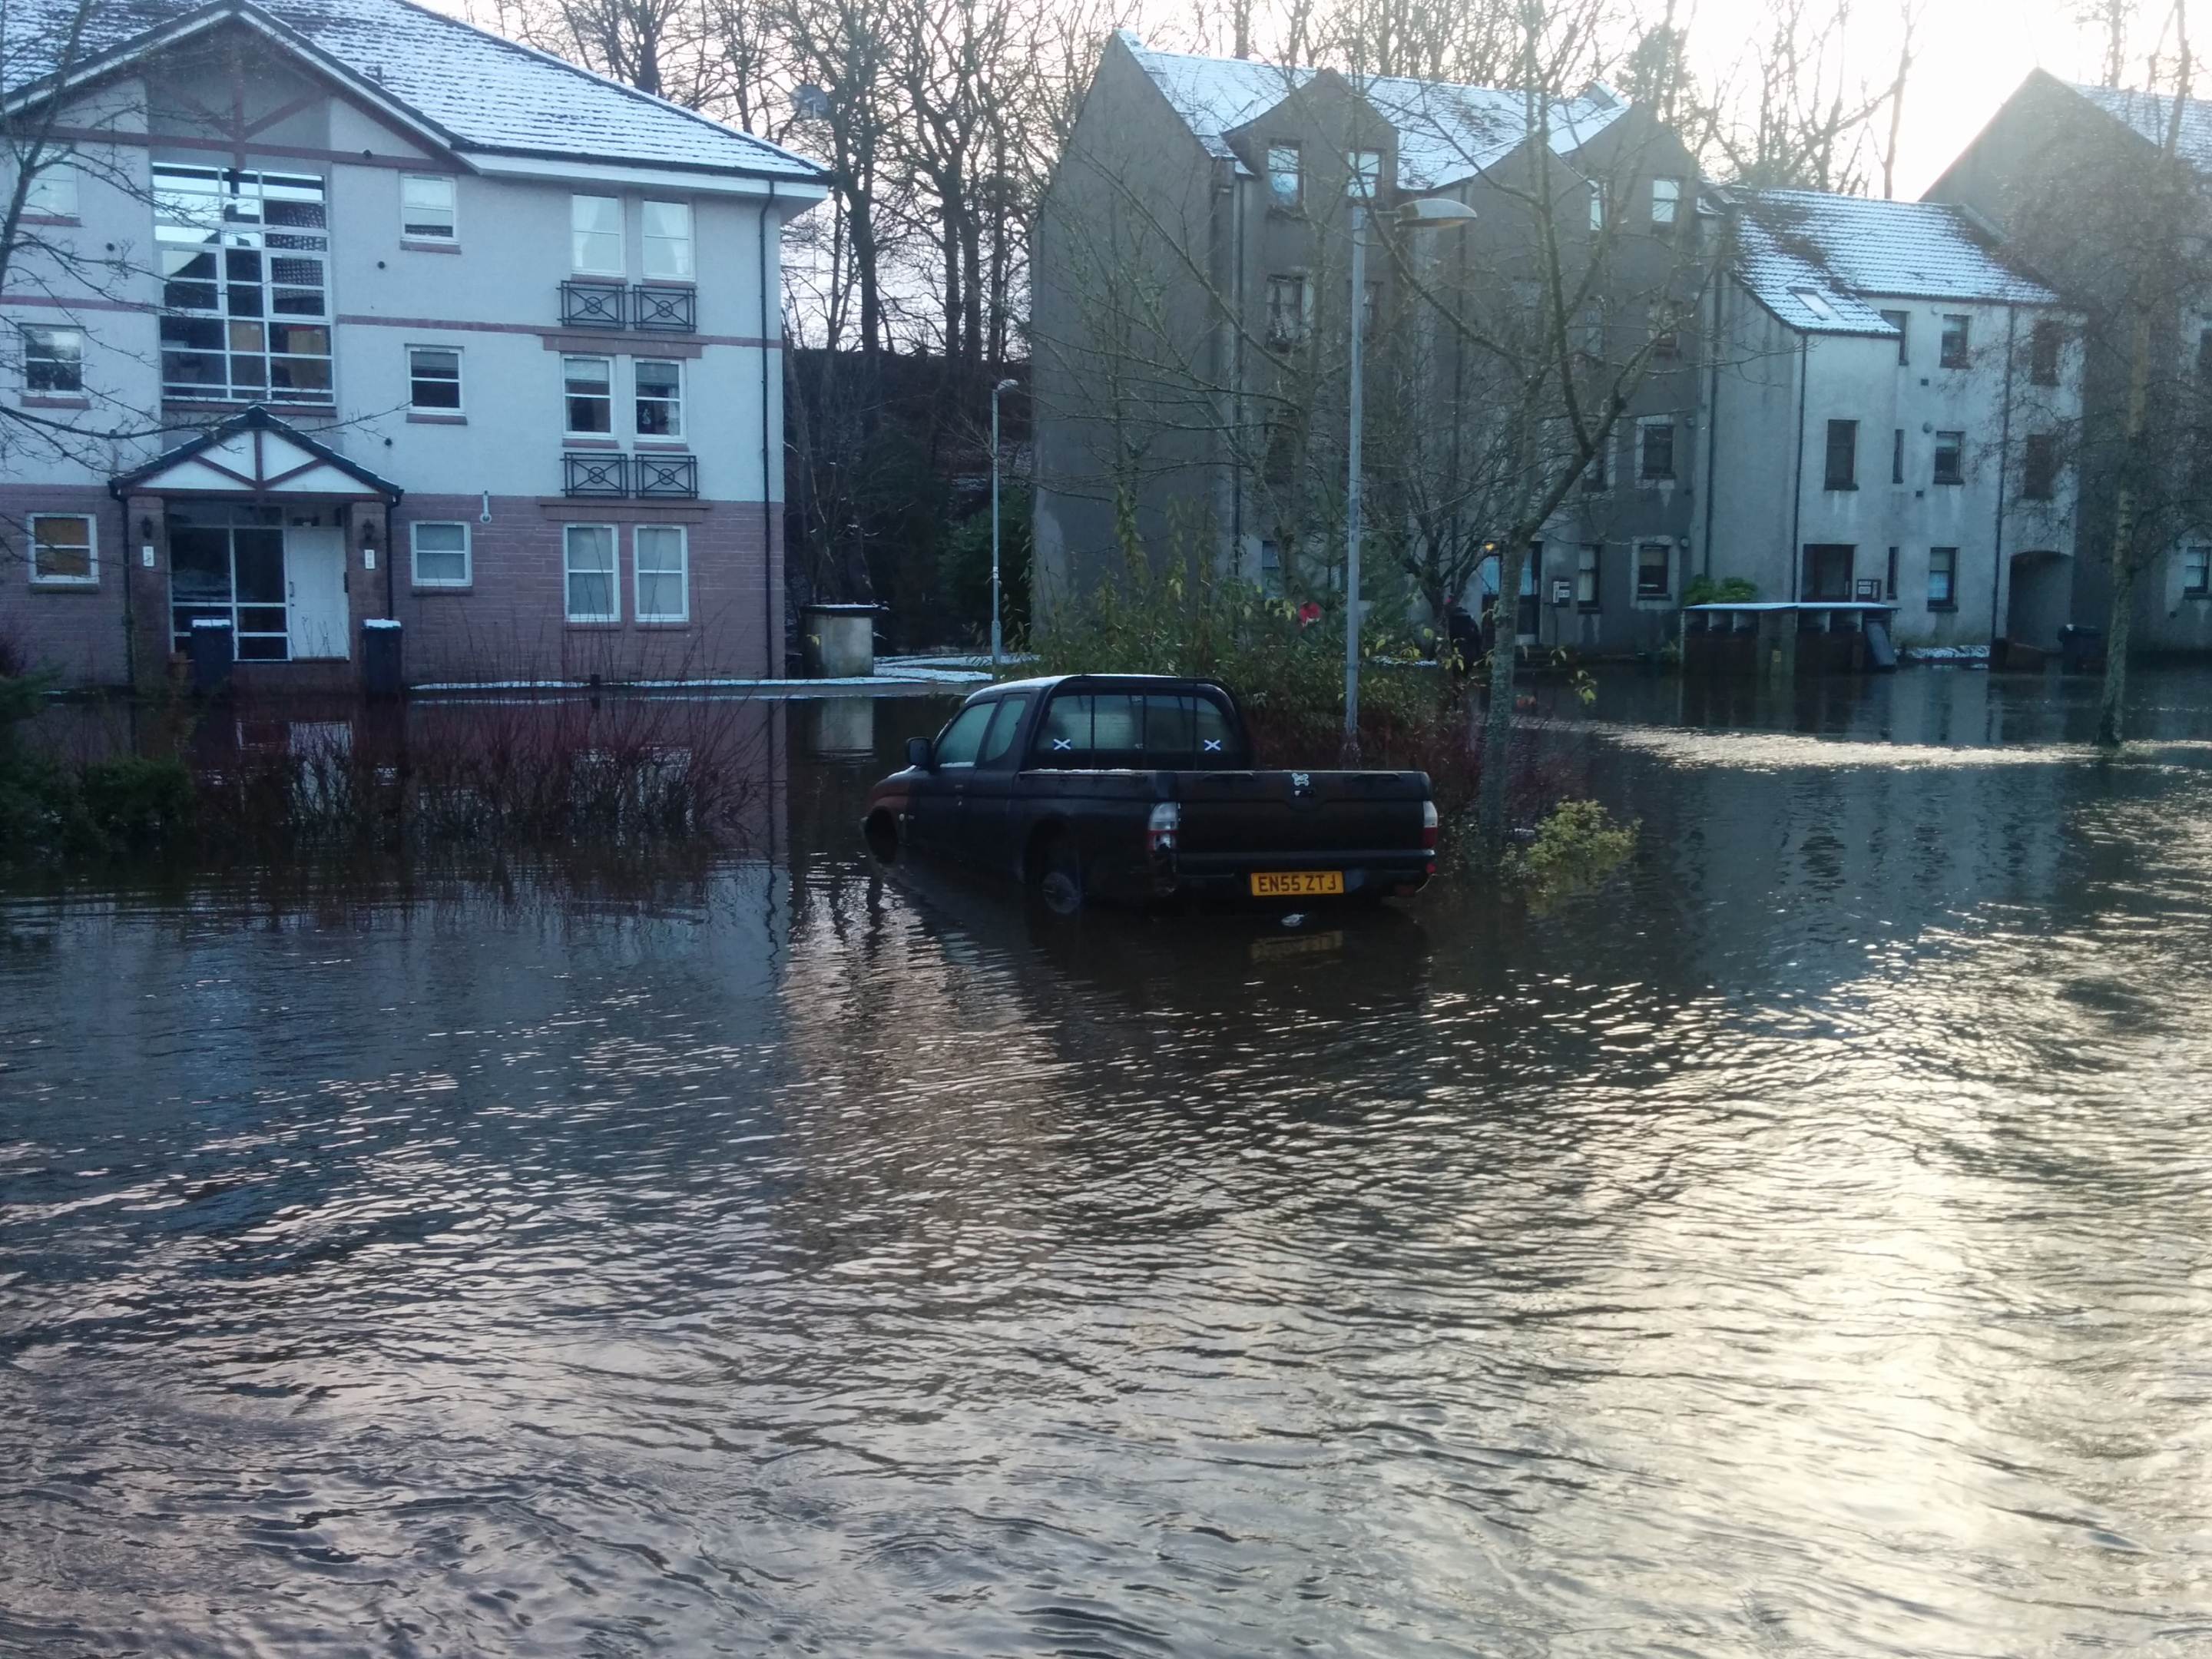 Flooding in the Millside area of Peterculter earlier this year.